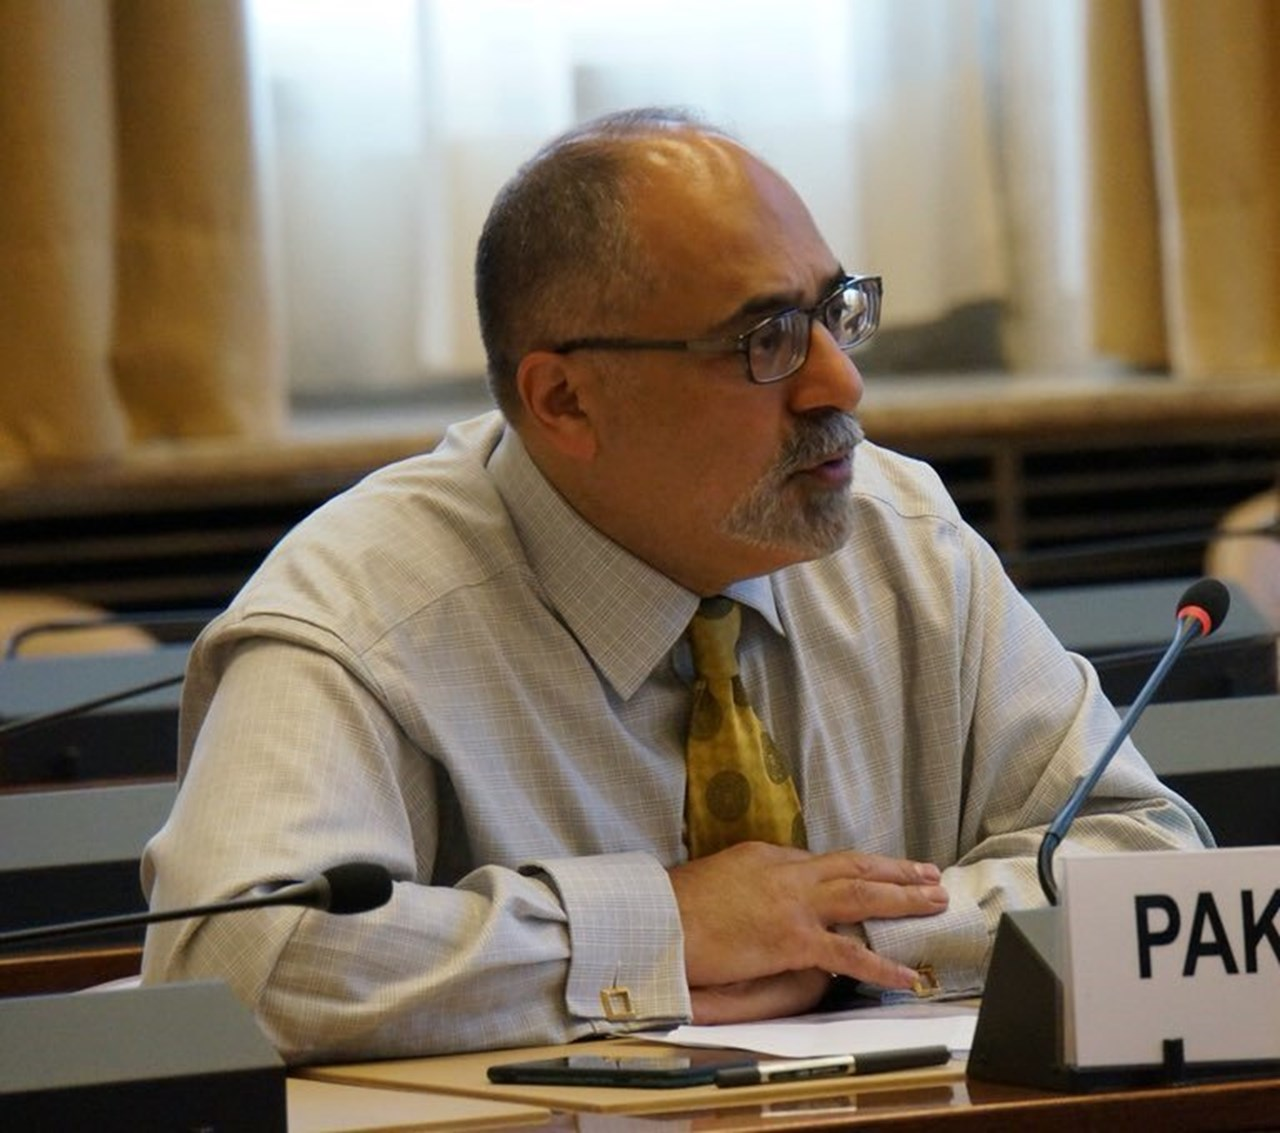 Pak welcomes UN rights report on Kashmir